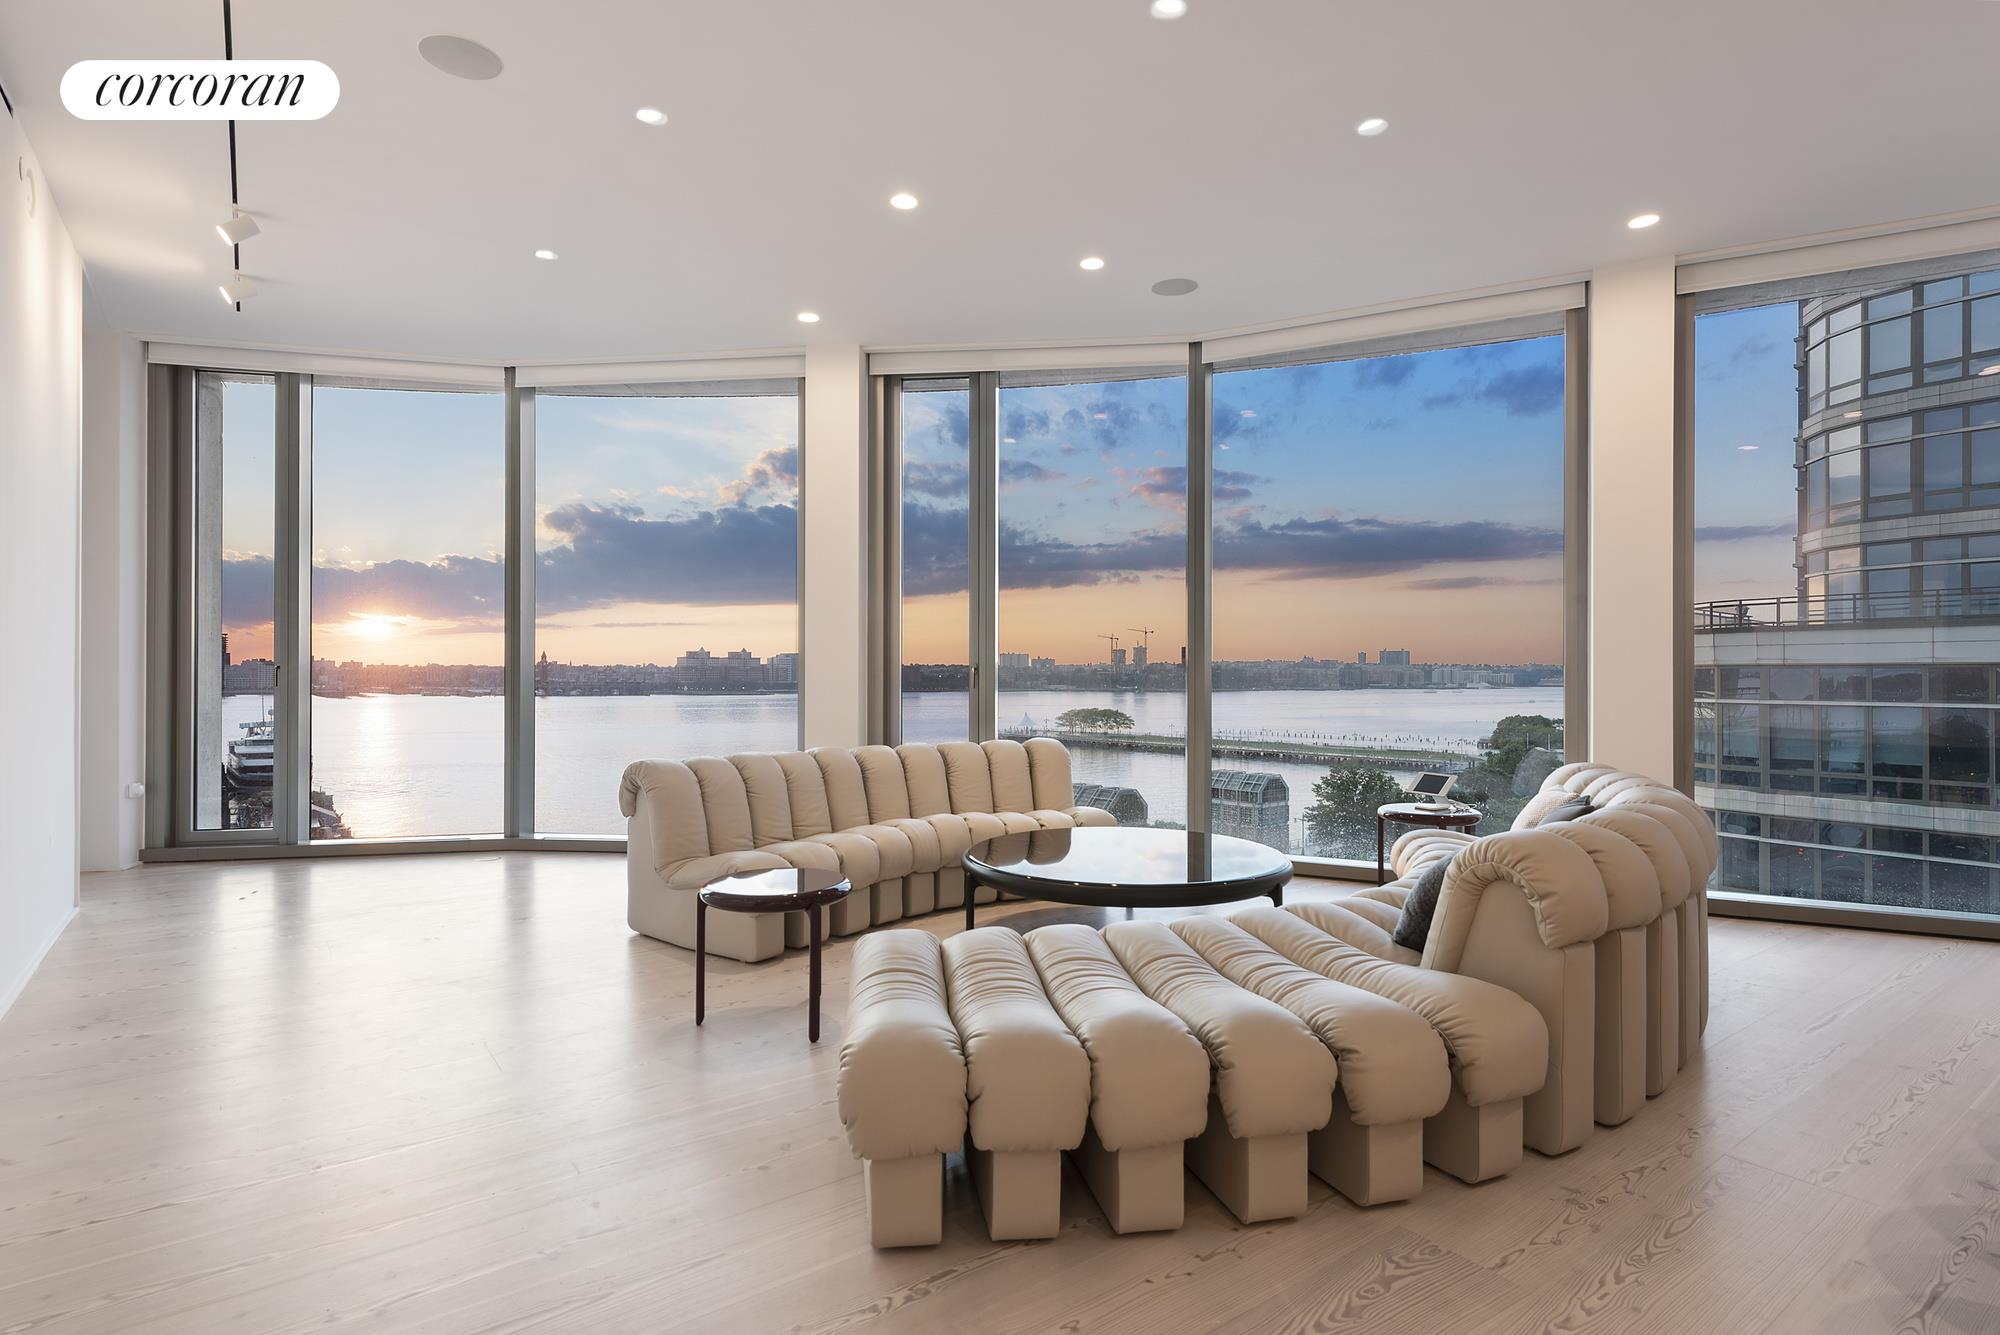 A sprawling high-floor 2792sqft 4-bedroom residence with glittering, unobstructed Hudson River views is available at 160 Leroy, the West Village's most successful new development condominium. Designed by Pritzker Prize-winning architects Herzog and de Meuron for contemporary living, this North & West sunset-facing masterpiece is situated in the desirable north tower of the condominium. Enjoy sweeping river views from every major room through 11' floor-to-ceiling windows, and an open crescent-shaped floorplan with ample large wall spaces for your art collection. From a semi-private hallway, enter an elegant gallery leading to dramatic corner Great Room with direct sunset water views.  An open Bulthaup kitchen with Scandinavian Larch wood cabinets and creamy Sivec marble slab countertops and backsplash and a unique enclosed Chef's kitchen offers opportunities for formal and relaxing entertaining options.The highest-end kitchen appliances include a Sub-Zero refrigerator, Wolf convection & steam oven, Gaggenau cooktop,  Miele dishwasher,  wine refrigerator, and built-in Miele coffee/espresso machine. Winged separately from the secondary bedrooms is a stunning Master bedroom suite with serene Hudson River views, a Transform-customized dressing room, and a lavish Hudson waterfront 5-fixture master bath with a deep Kaldewei soaking tub, radiant heated floors, dual Sivec marble vanity, oversized stall shower, and water closet. The additional 3 bedrooms have en-suite bathrooms with large custom vanities and Corian sinks. The 4th bedroom-adjacent to the the Great Room-can also function as a study or media room with open river views.  A jewel-like powder room has floor-to-ceiling Scandinavian larch wood, copper fixtures and has a floating Sivec marble vanity. This home also features a laundry area with a sink and vented washer/dryer. Custom details include: smartly pre-wired for AV; Lucifer lighting, acoustic fabric wrapped ceiling, hidden surround sound Sonance speaker system